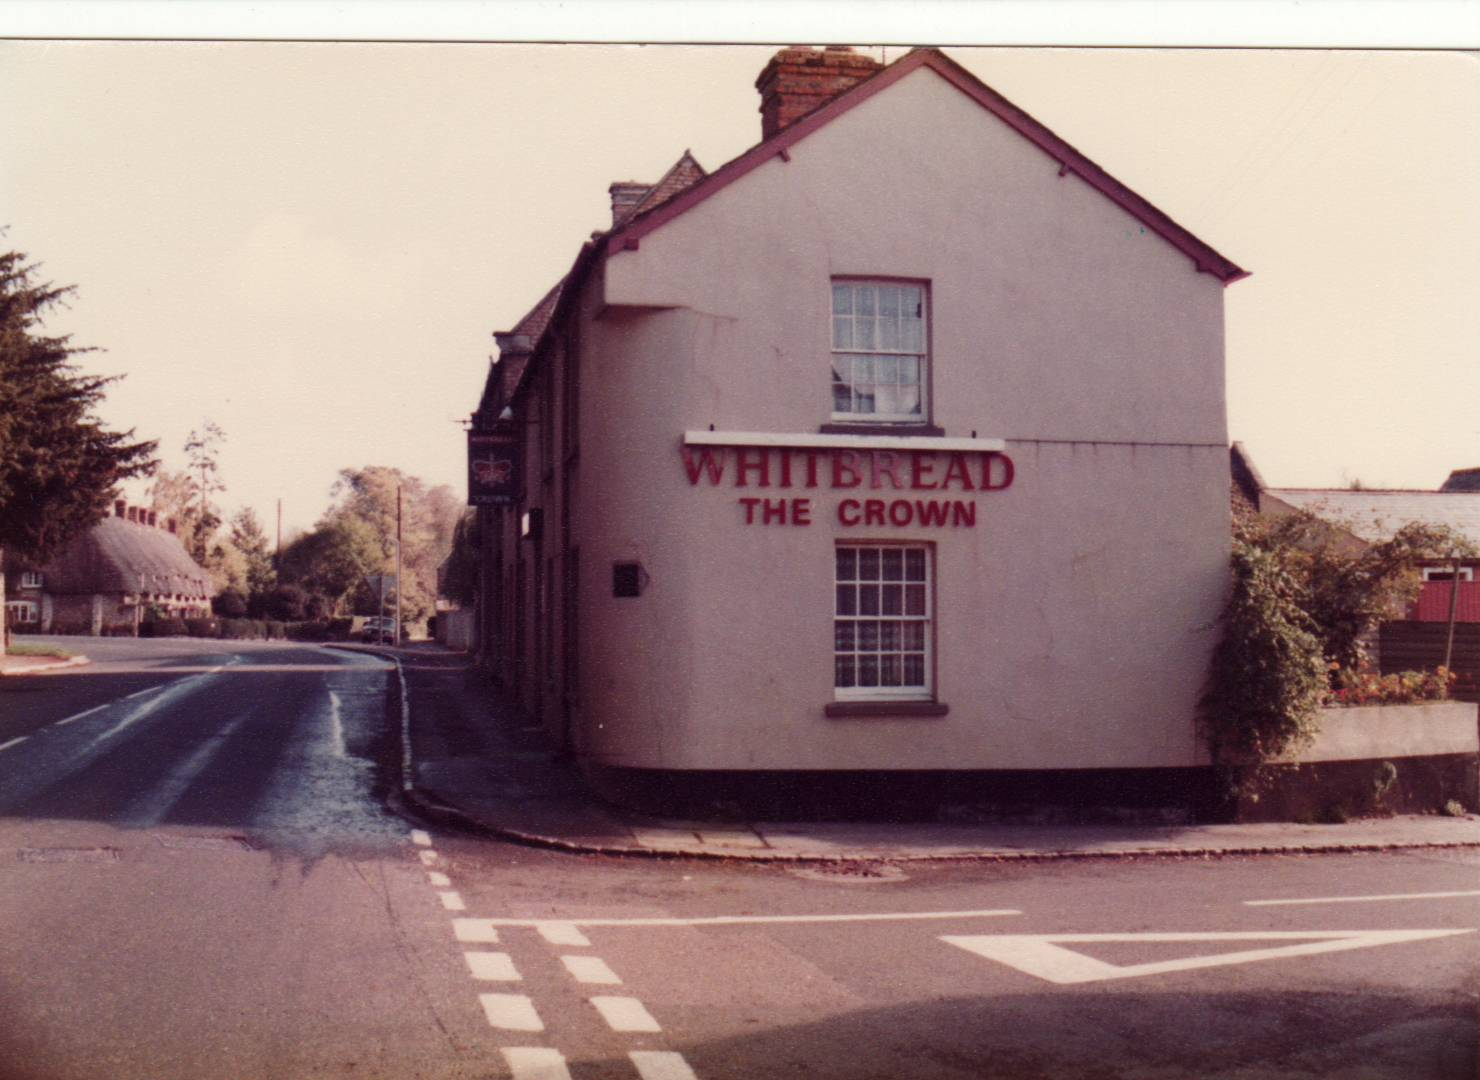 Shrivenham Public Houses photos by Roy Selwood